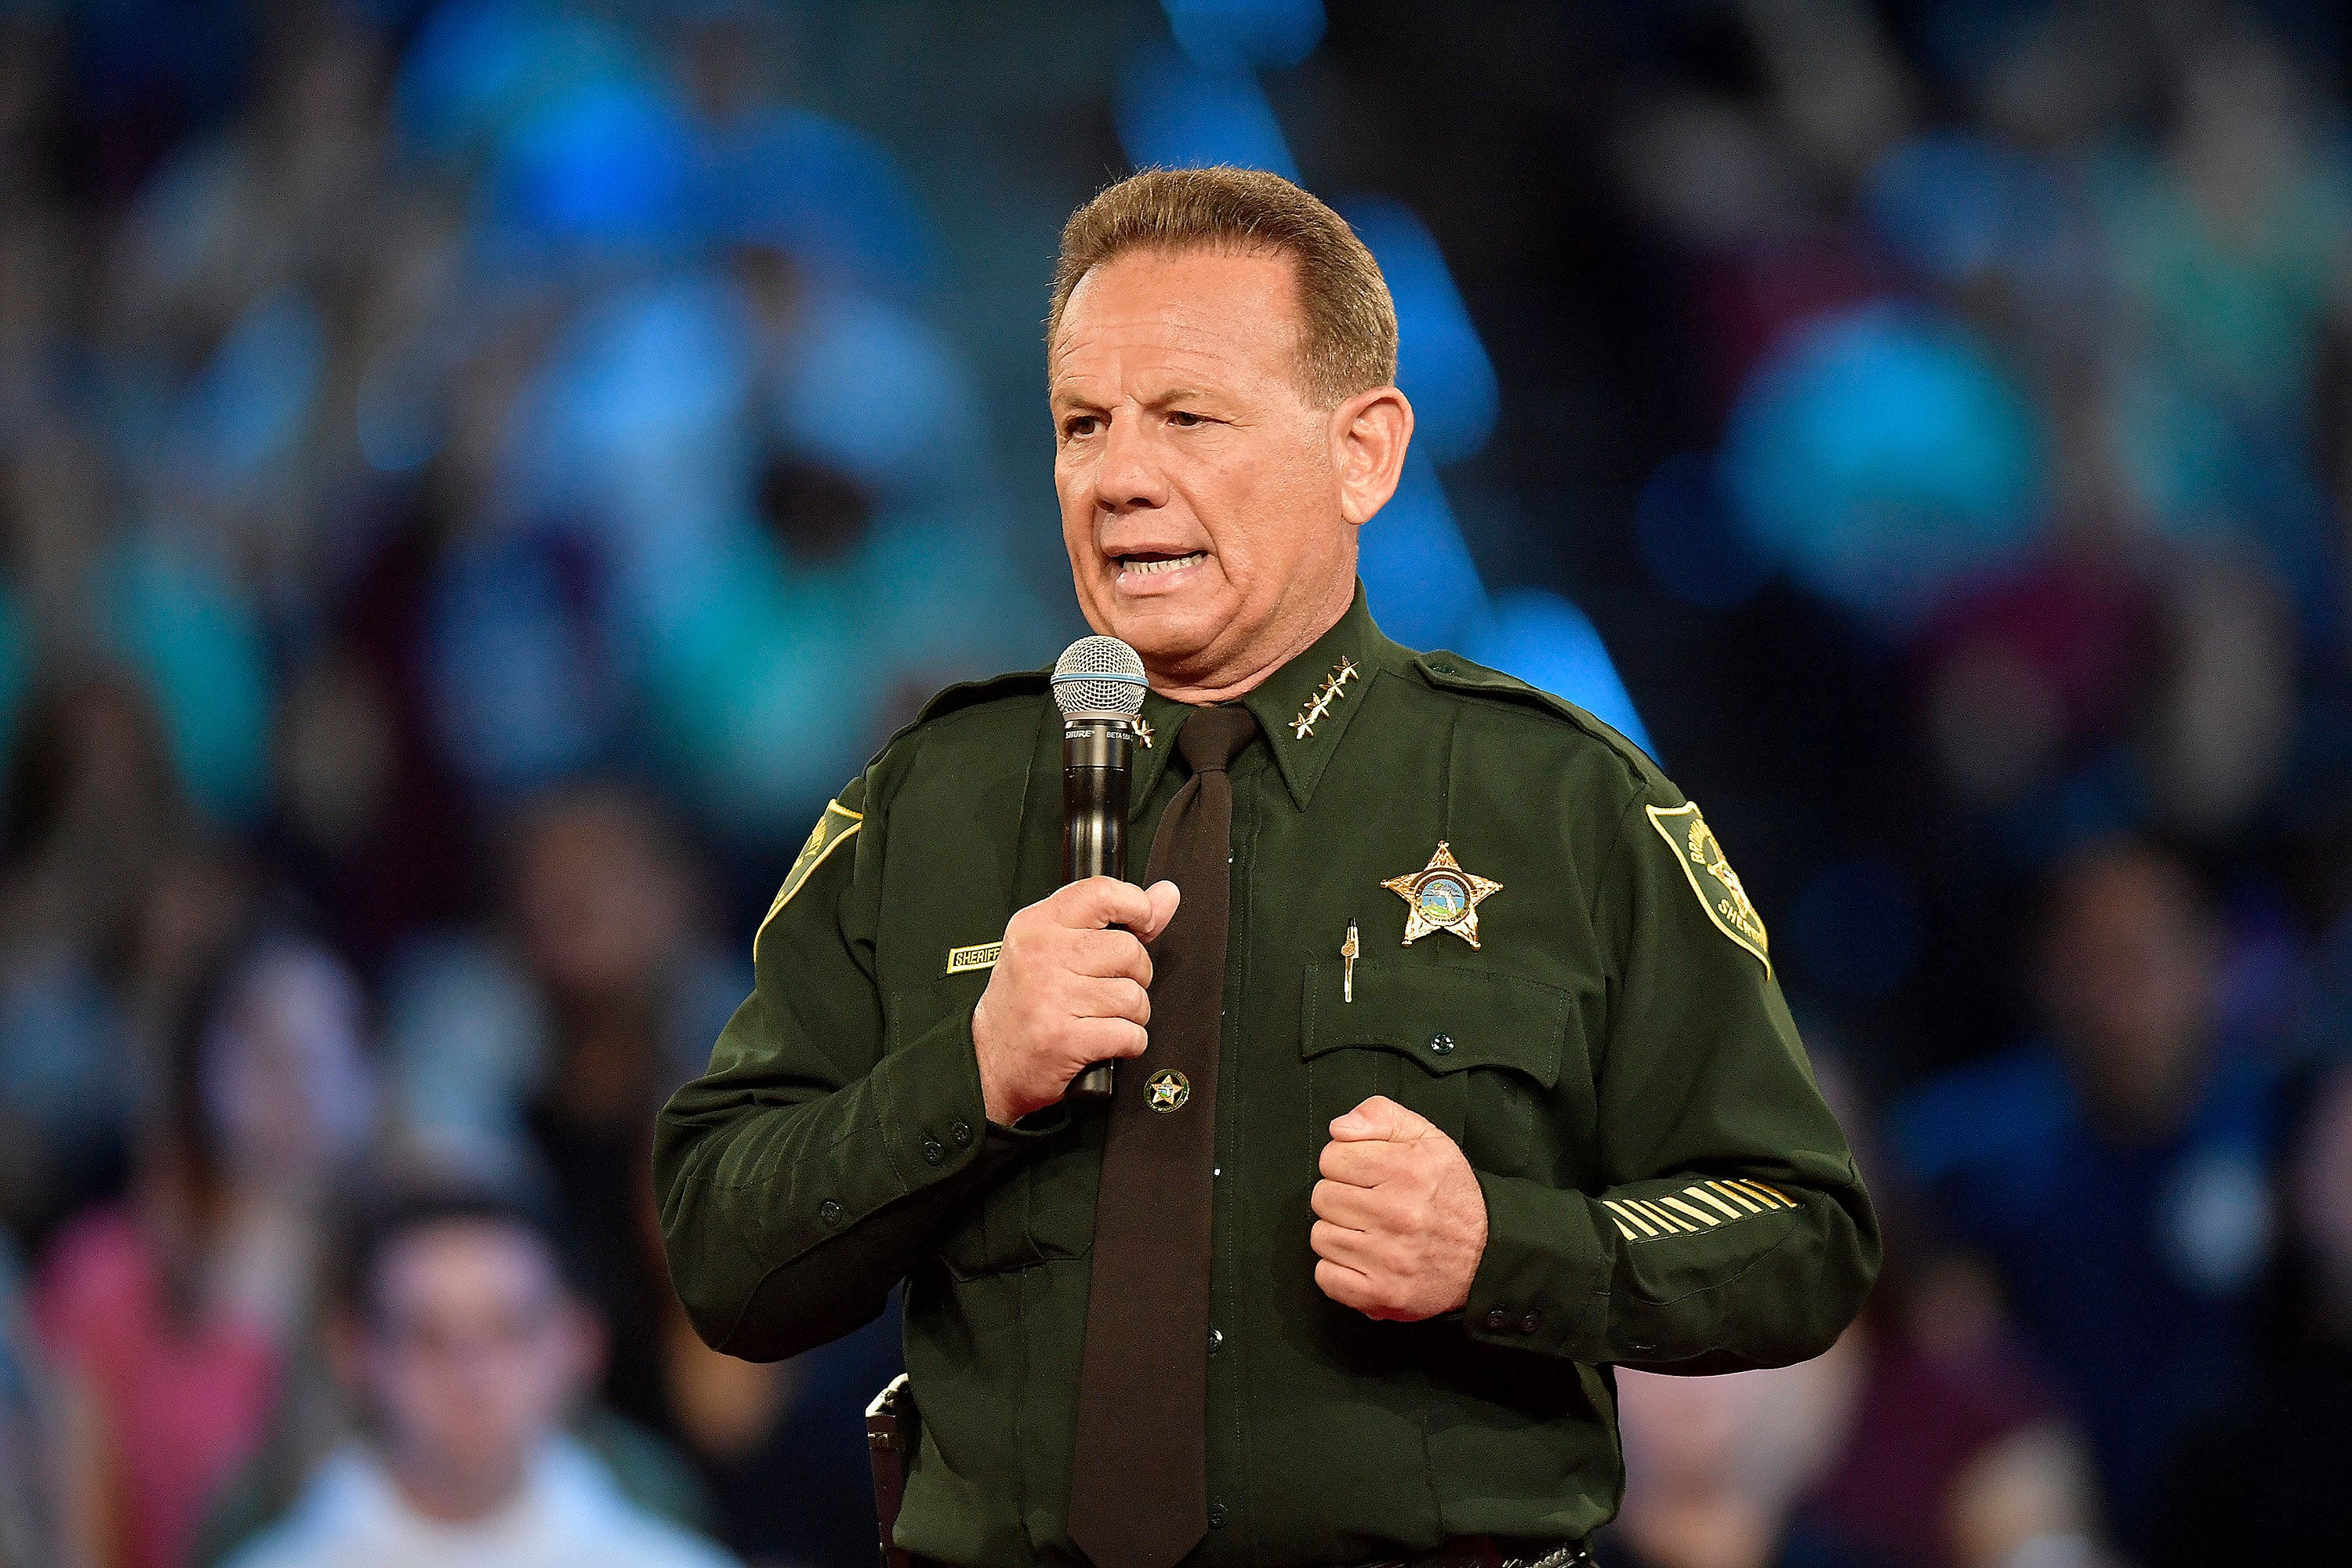 Broward County Sheriff Scott Israel speaks before the start of a CNN town hall meeting on Wednesday, Feb. 21, 2018, at the BB&T Center, in Sunrise, Fla. (Michael Laughlin/Sun Sentinel/TNS via Getty Images)